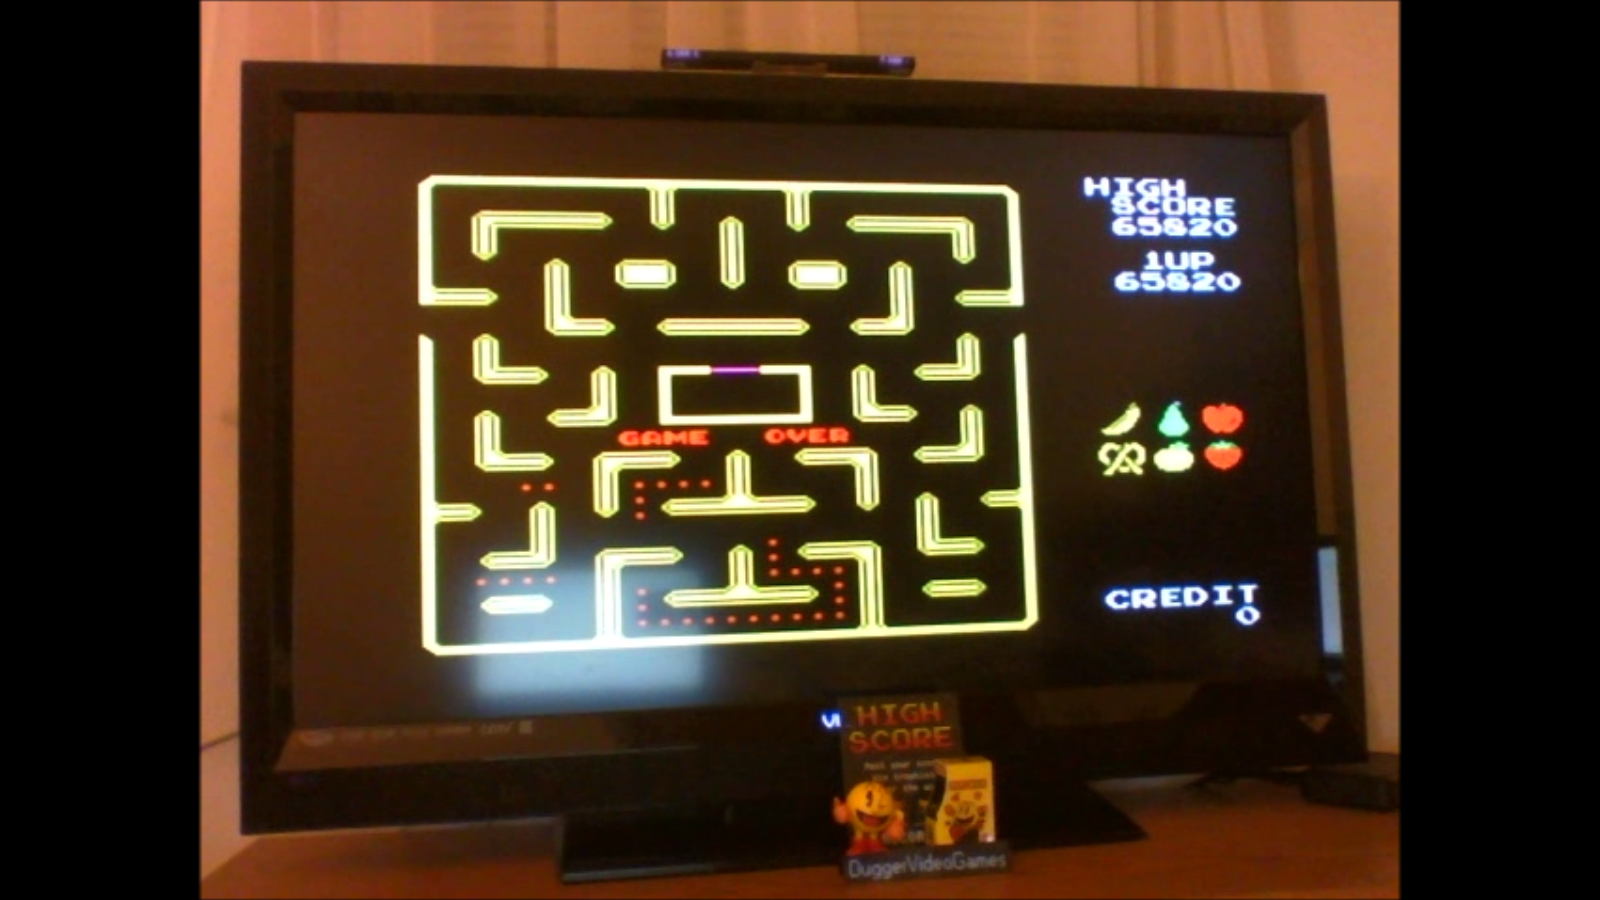 DuggerVideoGames: Pac-Man Collection: Ms. Pac-Man (Colecovision Emulated) 65,820 points on 2016-12-20 00:57:49